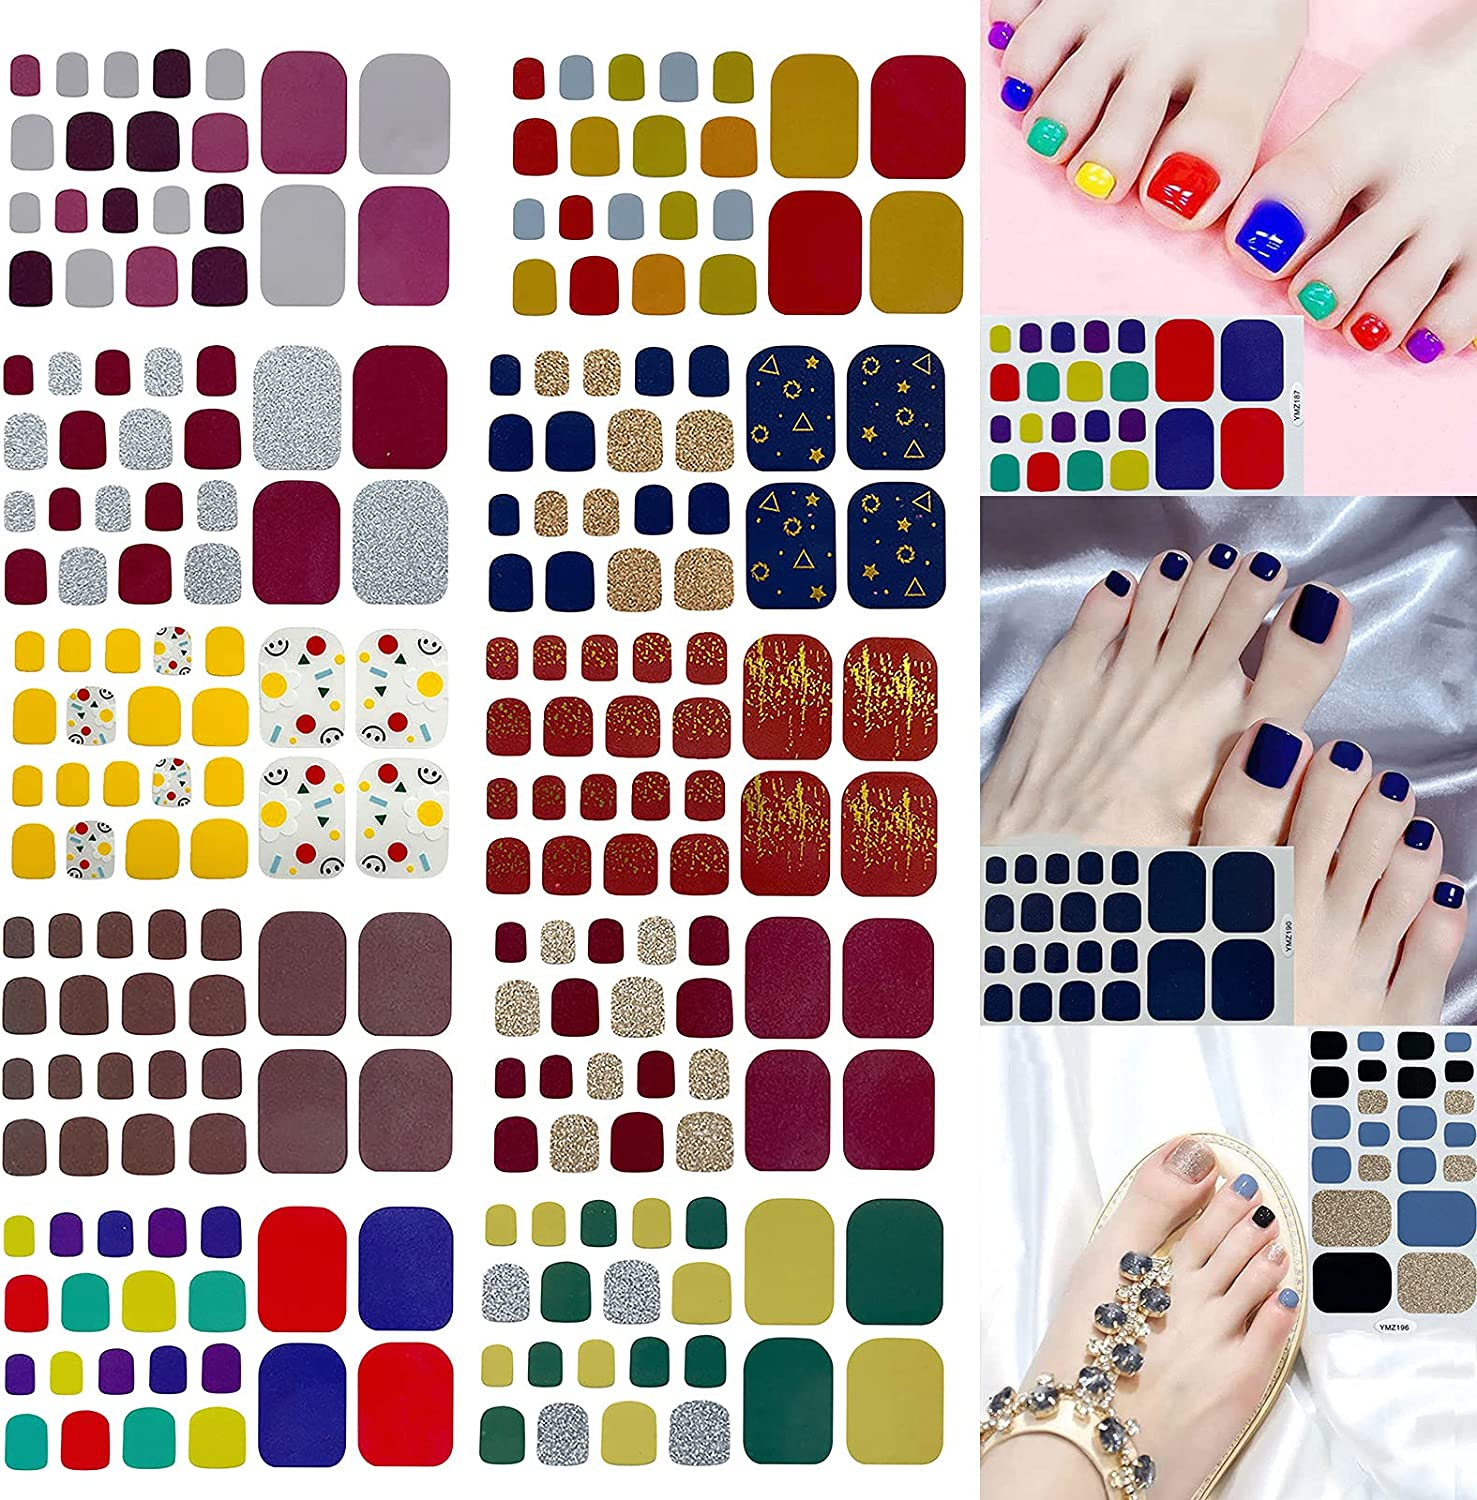 JHKUNO Foot Nail Stickers Outlet SALE Free Shipping New for Art Waterproof Toenail Wraps